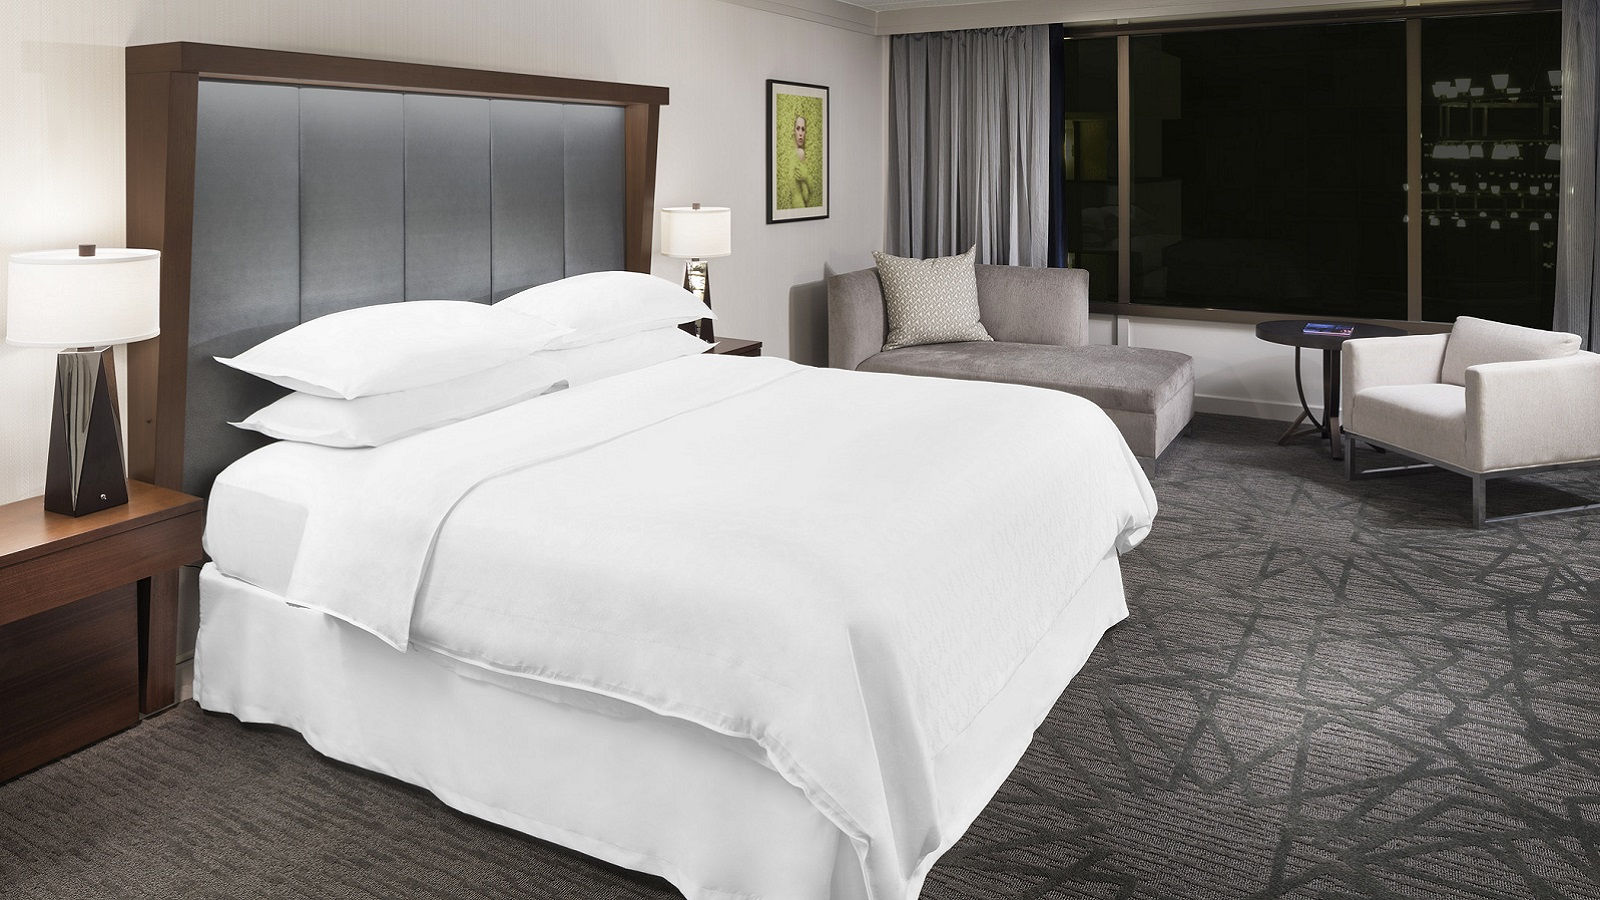 Sheraton Bloomington Hotel Accommodations | Suite